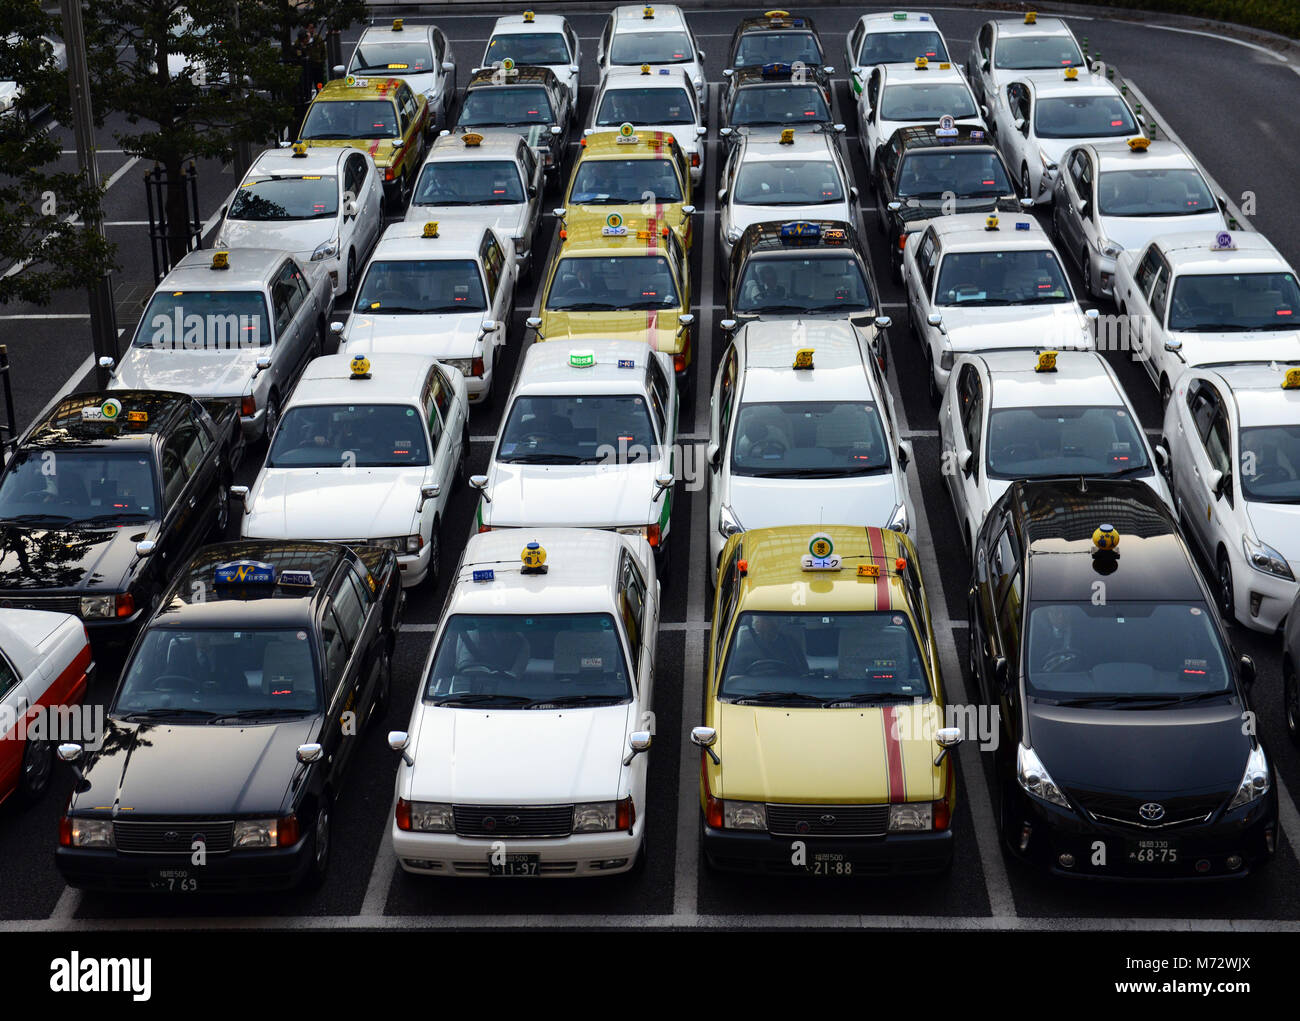 Japanese taxis lined in perfect rows at the Hakata railway station in Fukuoka. - Stock Image